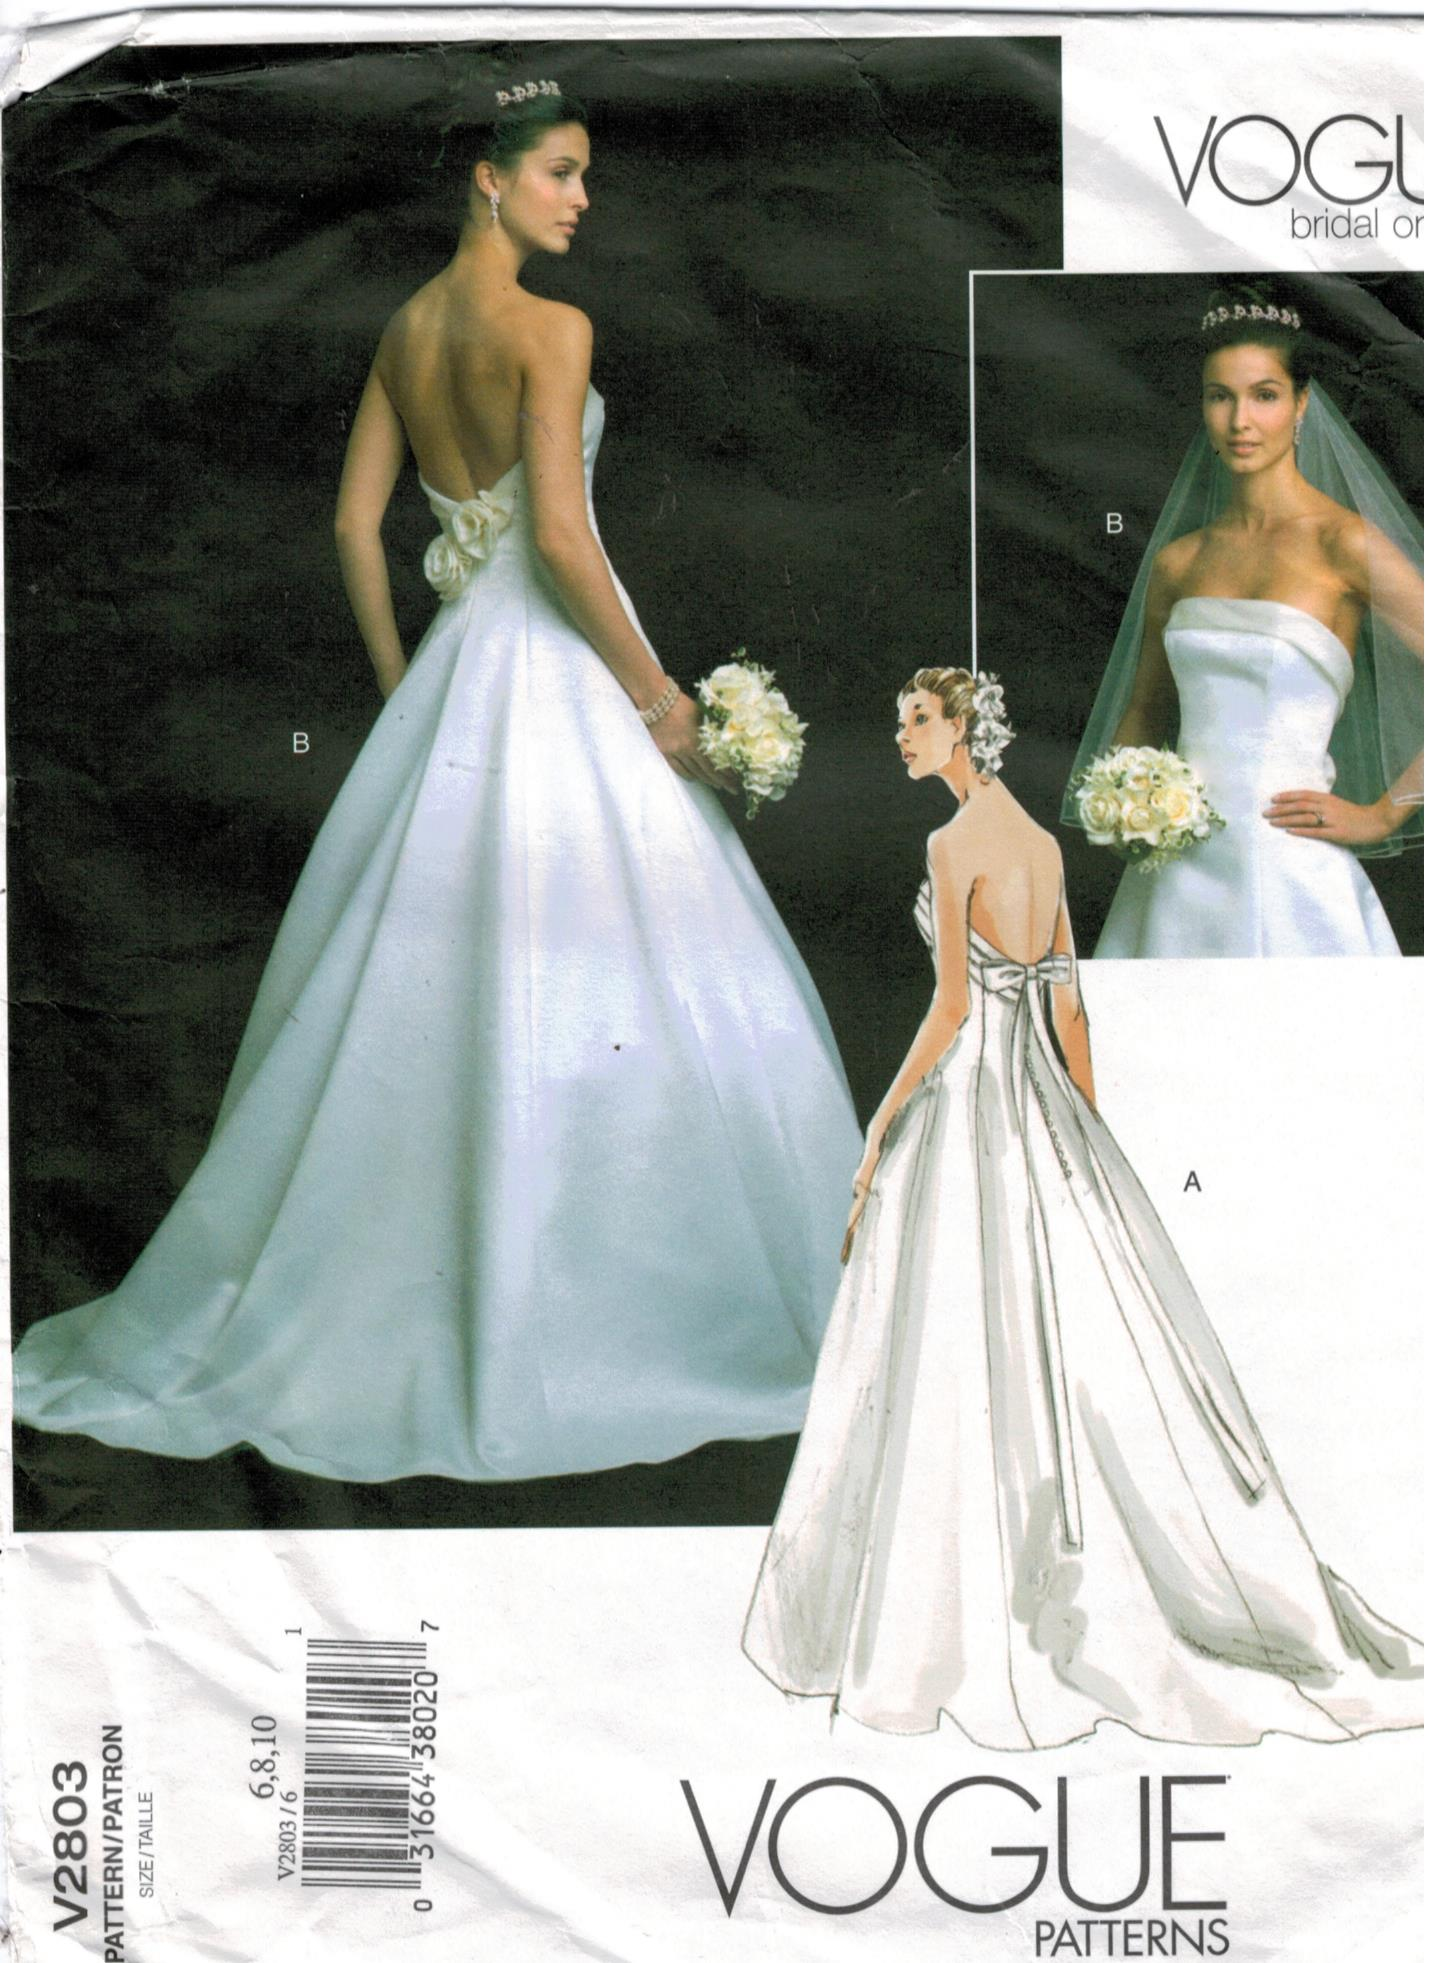 Wedding and Bridal Sewing Patterns | Sewing Pattern Heaven - Part 3